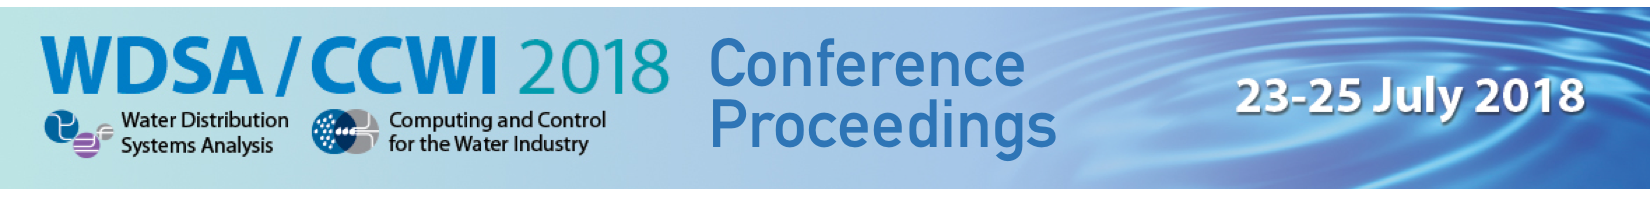 ConferenceProceedings-Banner